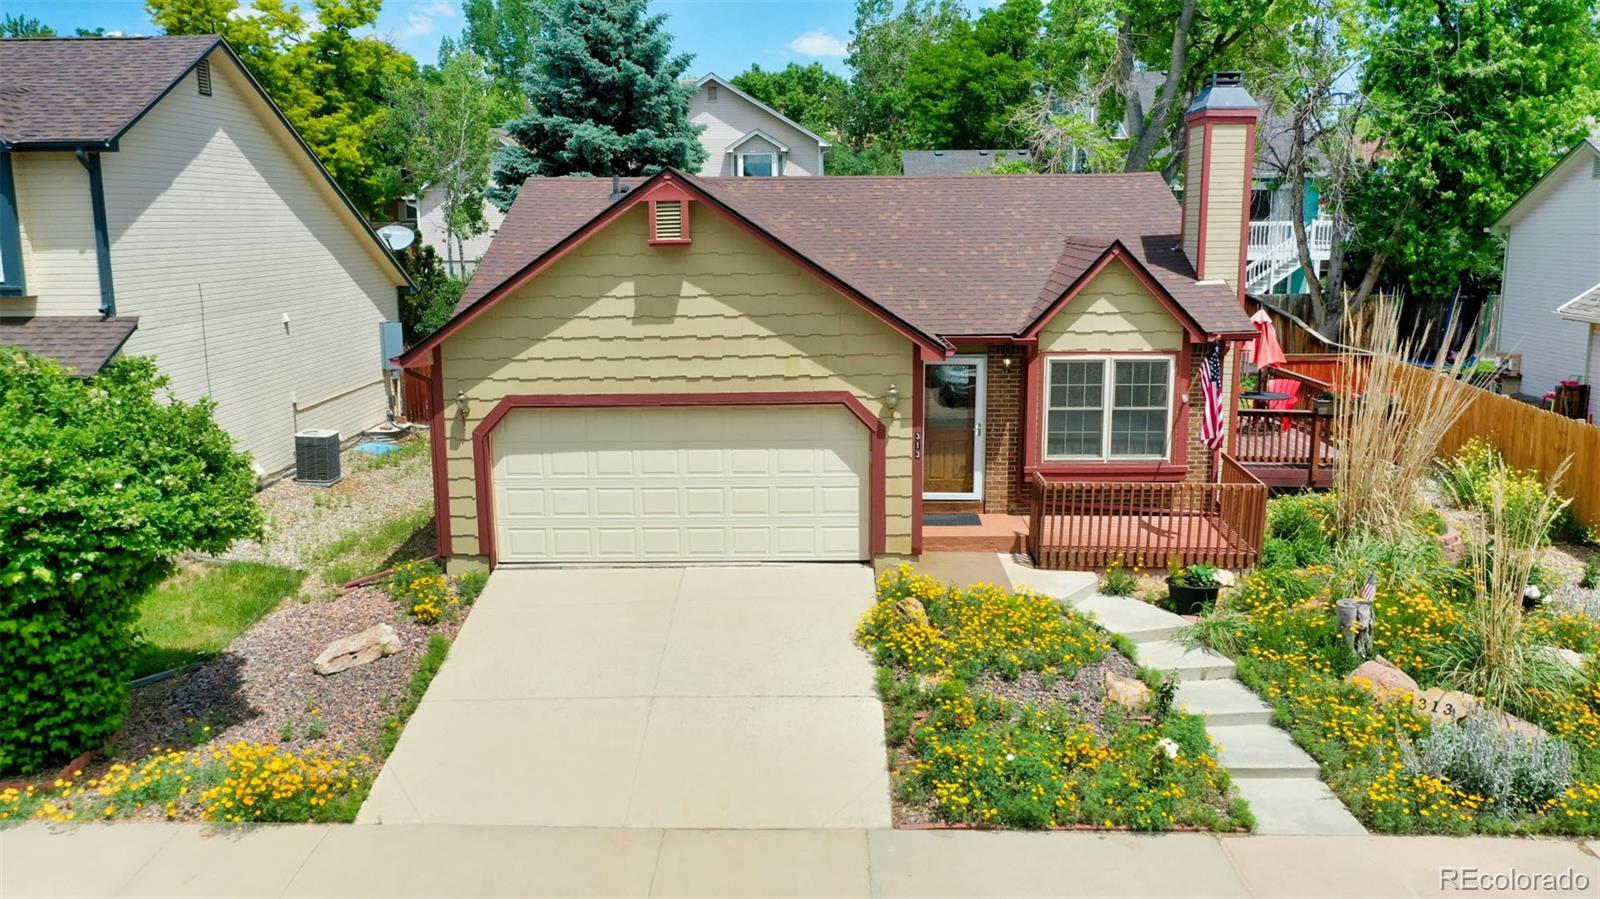 MLS# 3885943 - 3 - 313 Mulberry Circle, Broomfield, CO 80020